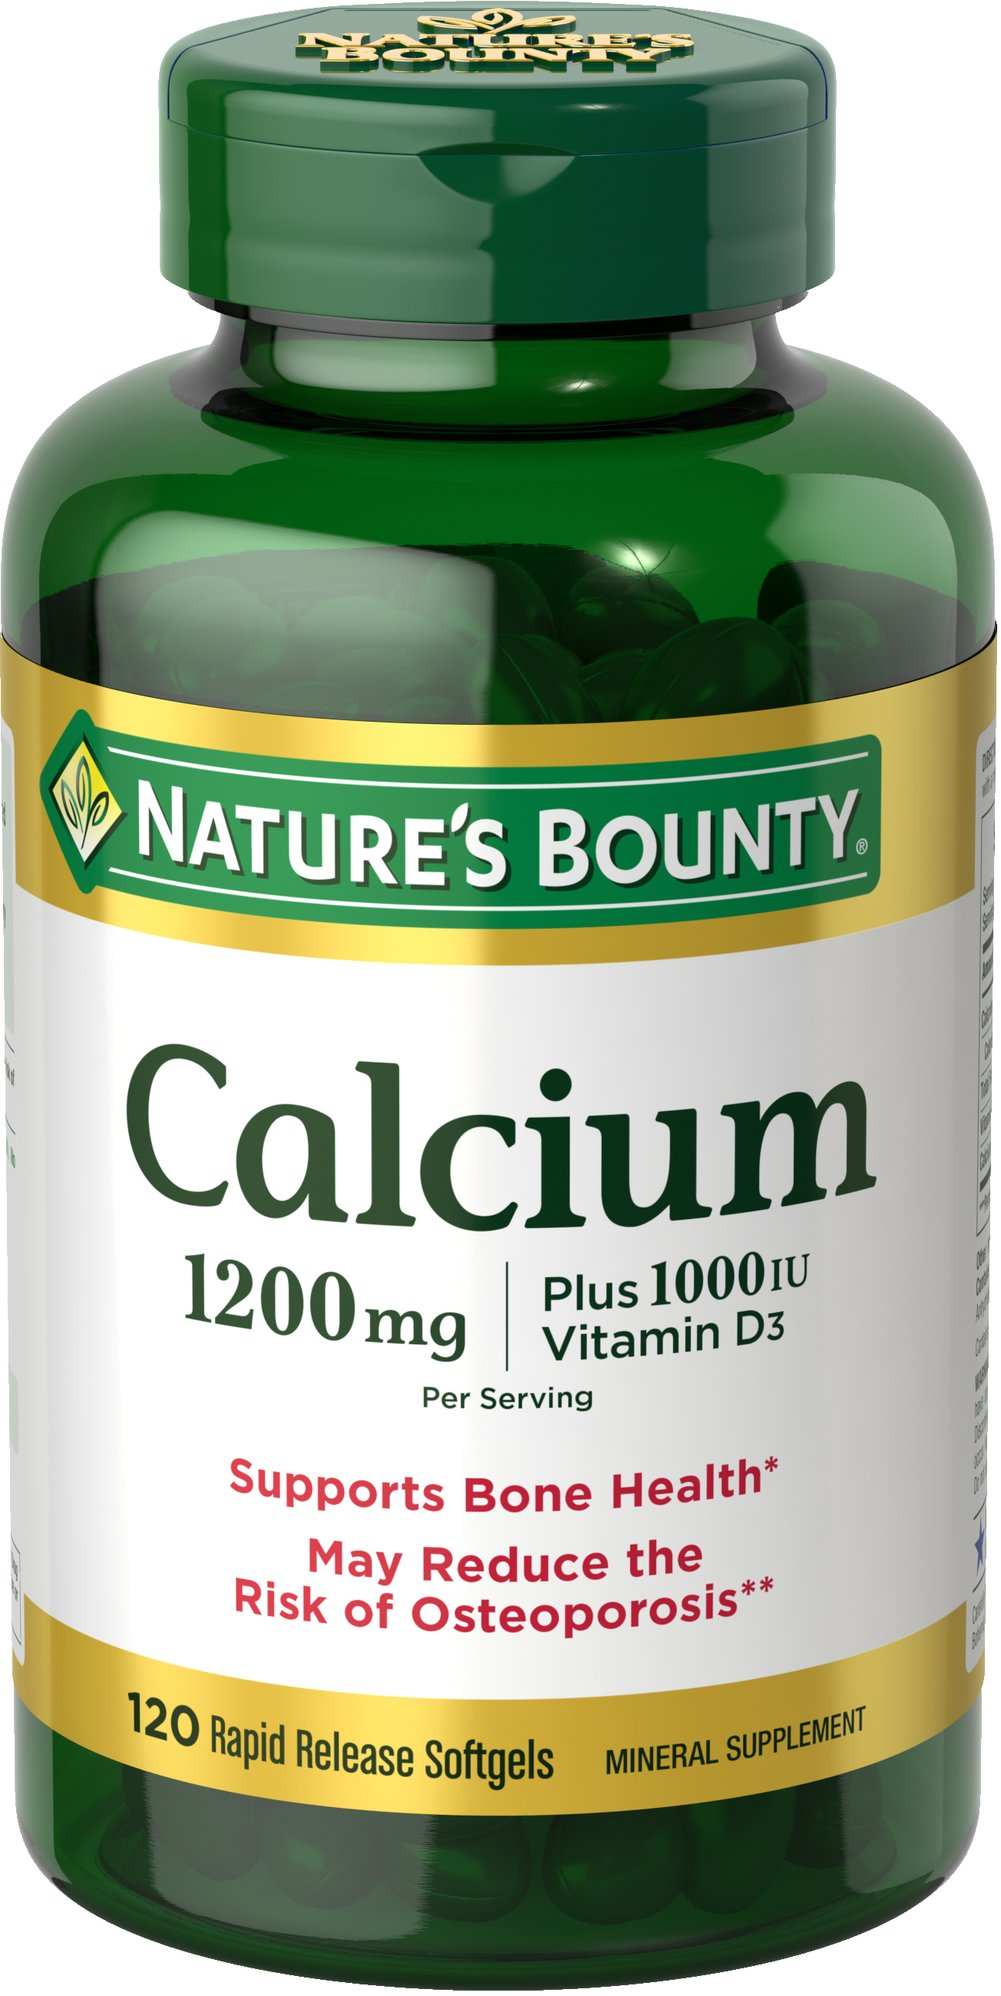 Nature's Bounty® Calcium plus Vitamin D